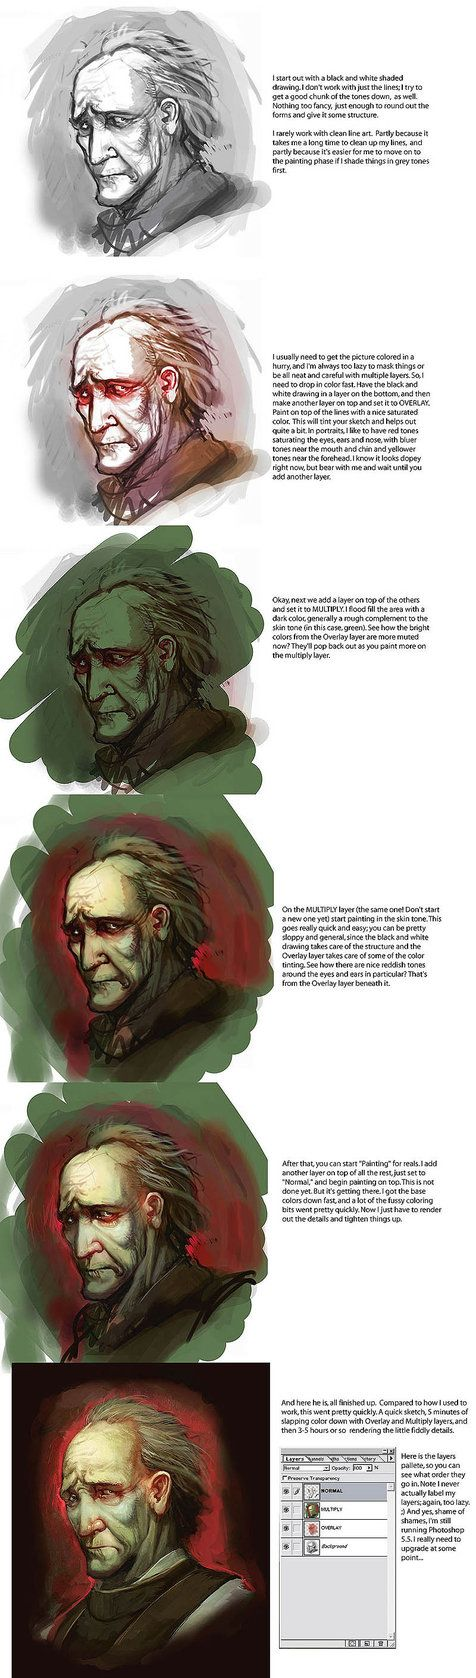 Character Design Digital Painting Tutorial : Best images about tutorials digital painting on